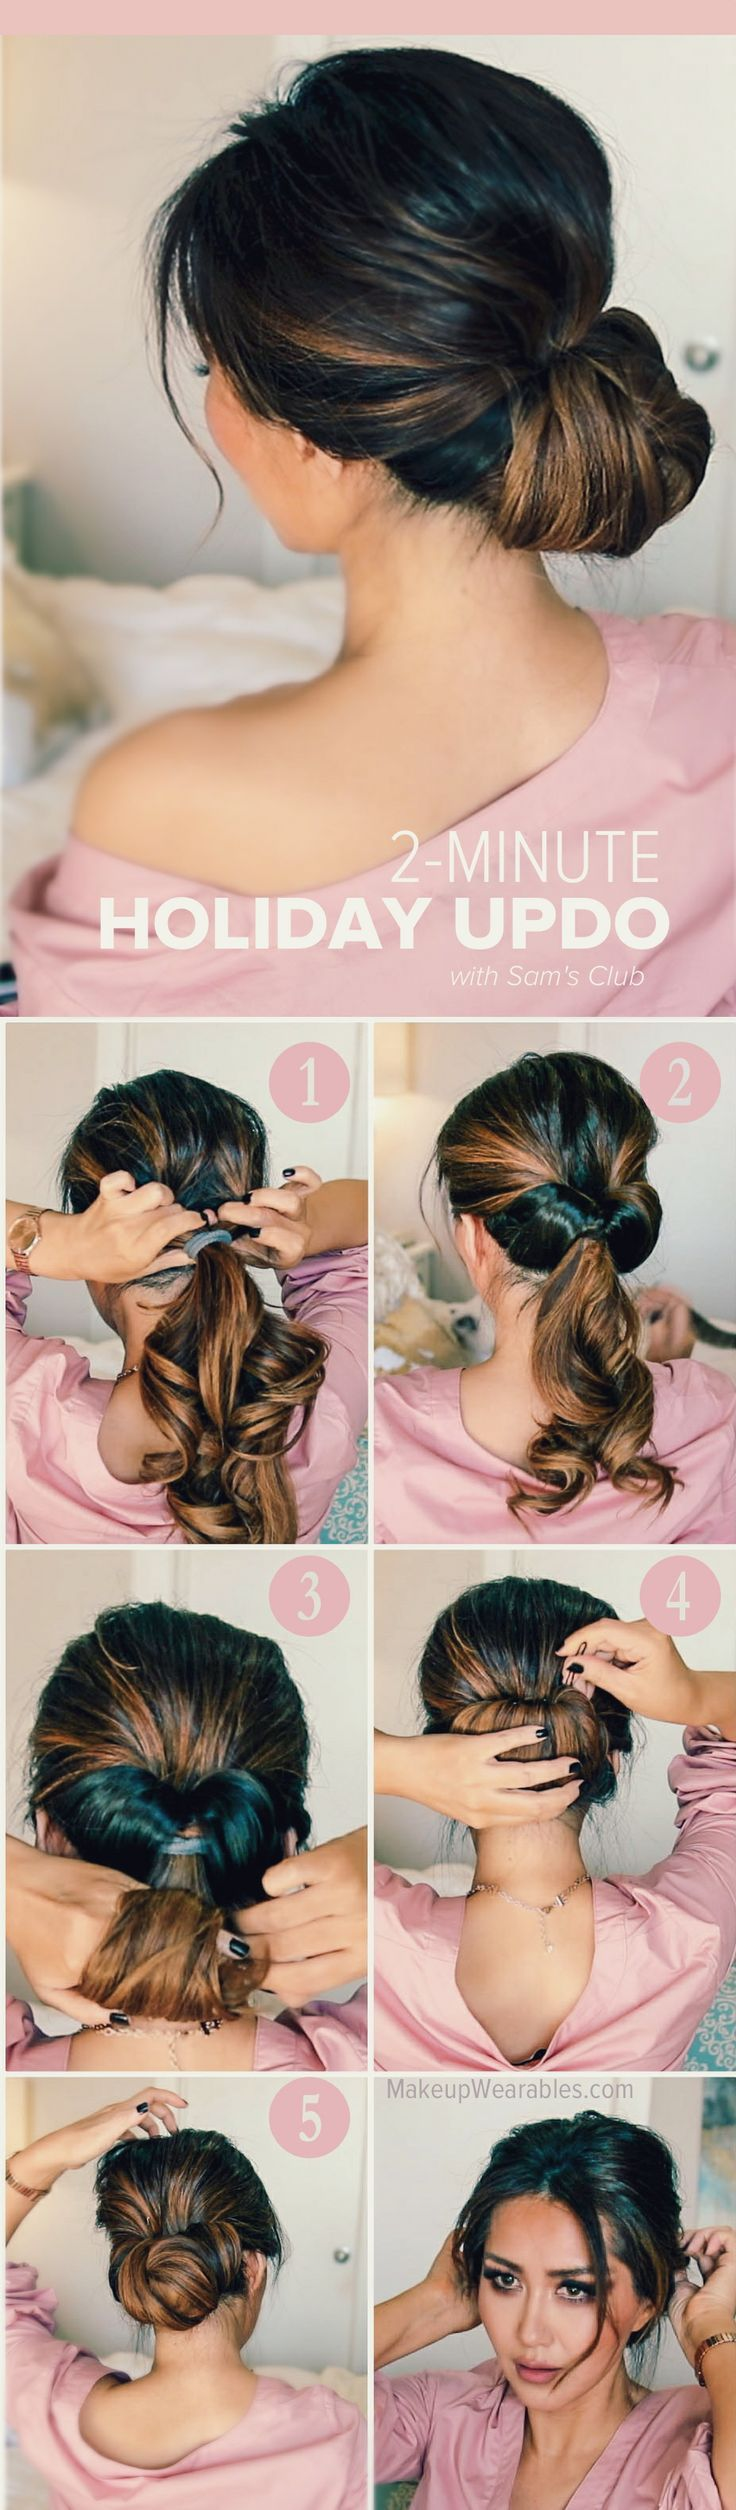 18 five-minute hairstyles to keep you looking polished